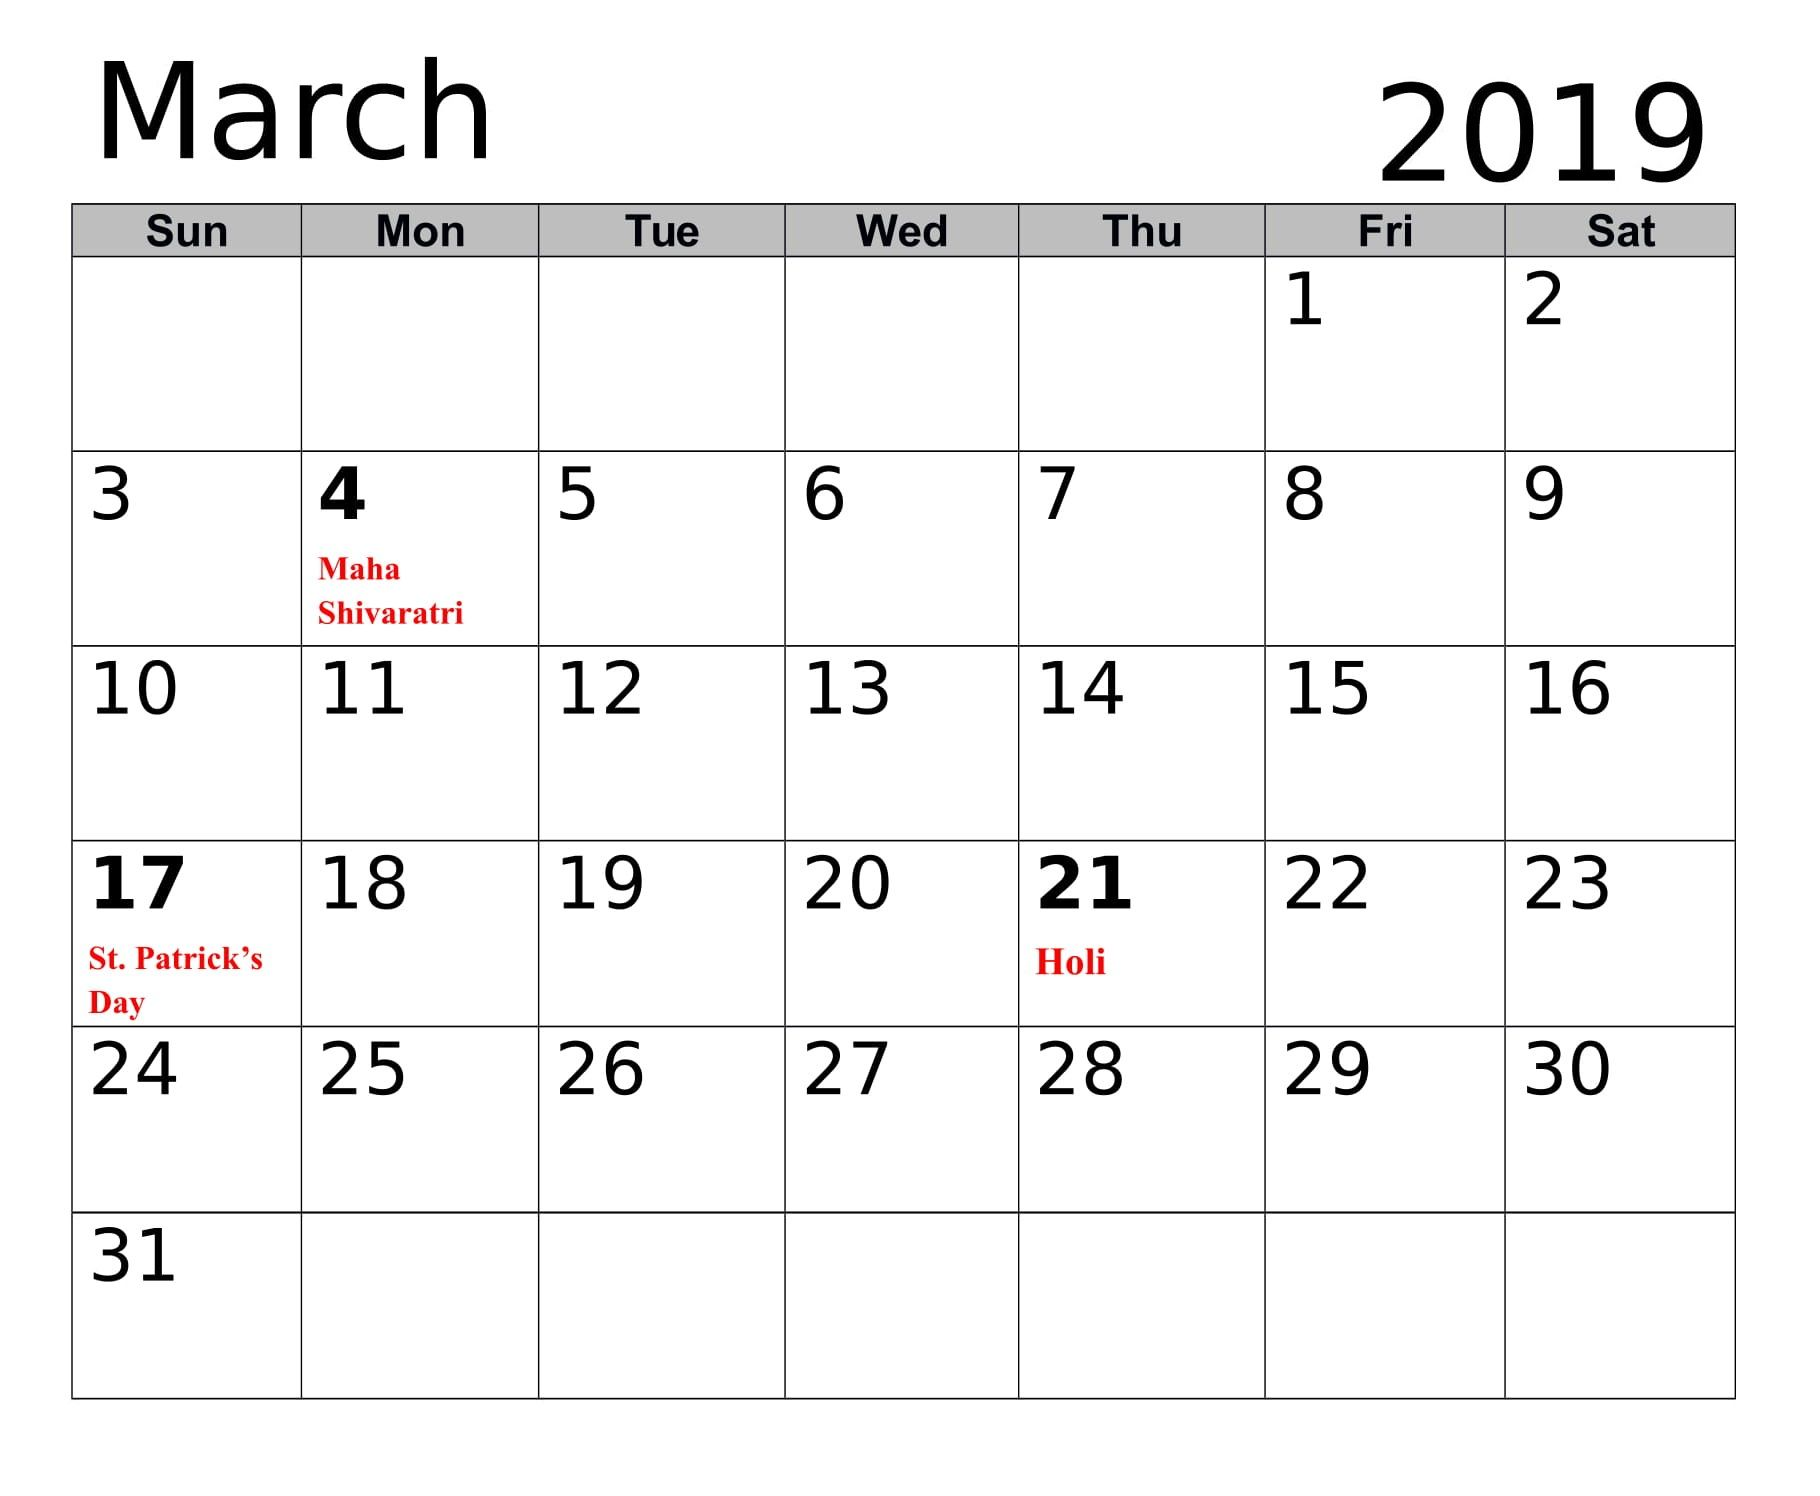 March Calendar With Holidays 2019 Calendar, 2019